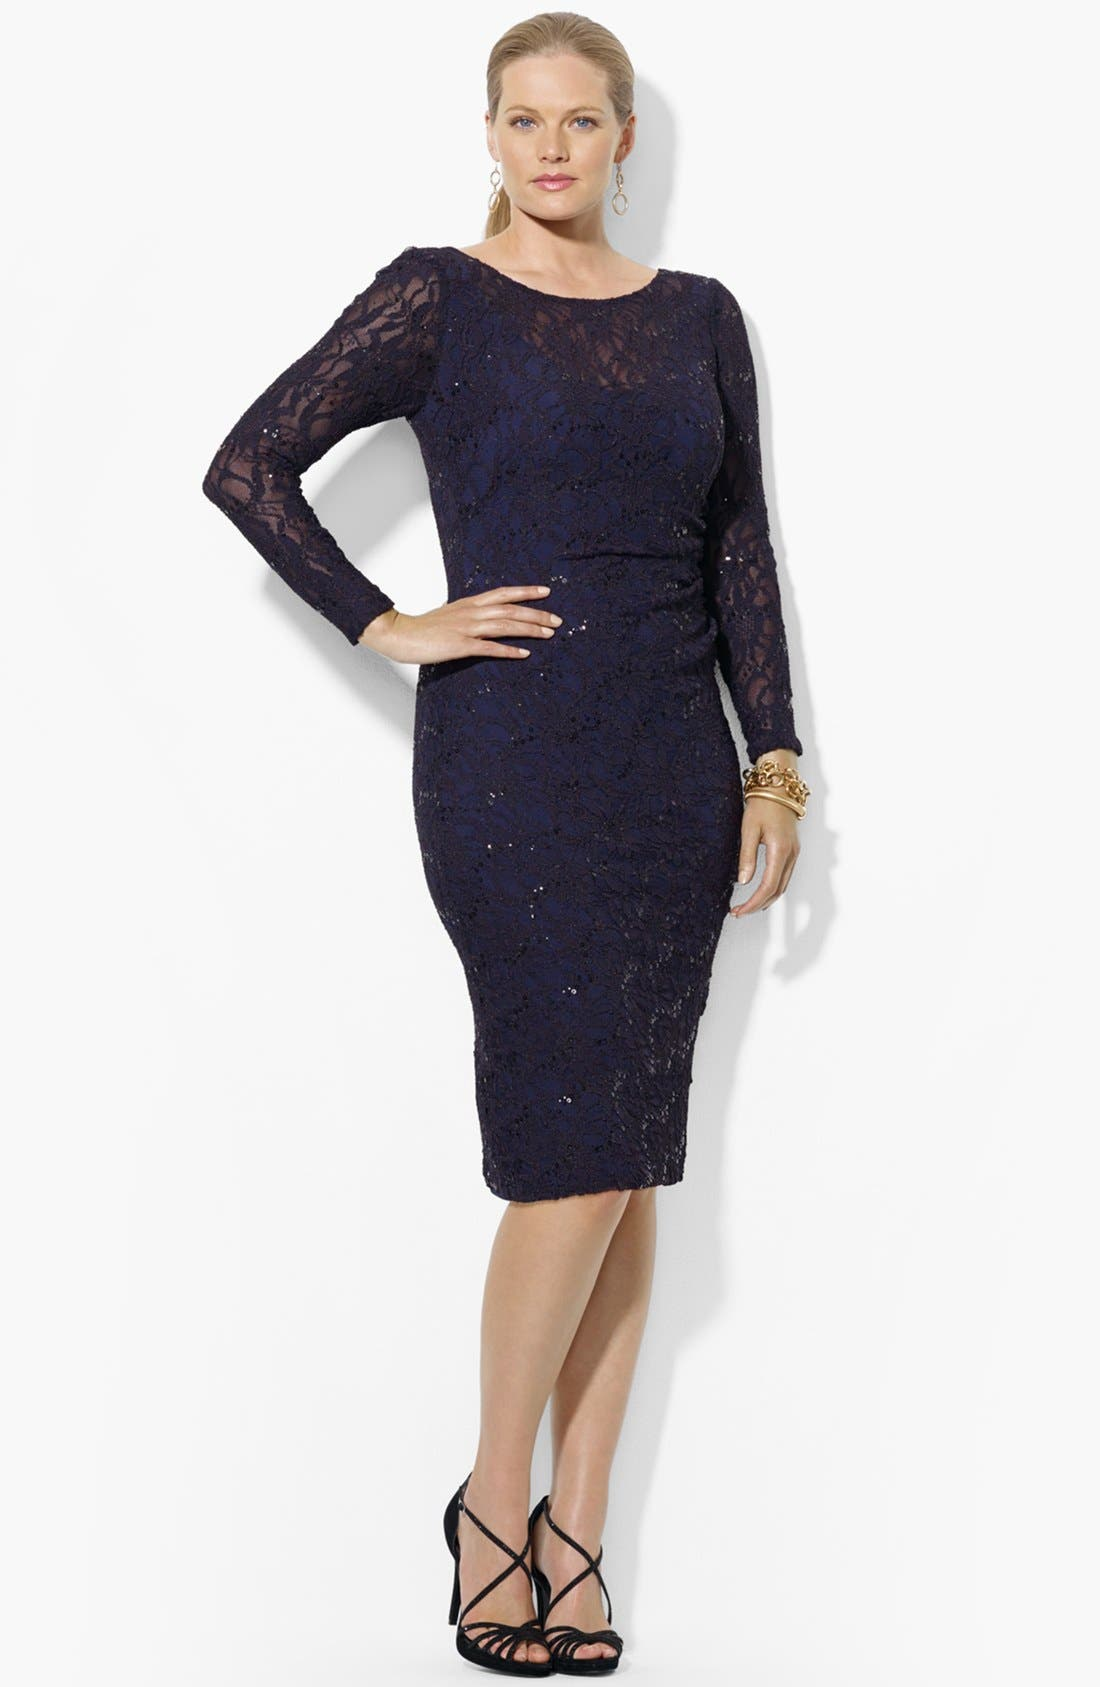 Alternate Image 1 Selected - Lauren Ralph Lauren Sequin Lace Sheath Dress (Plus Size)